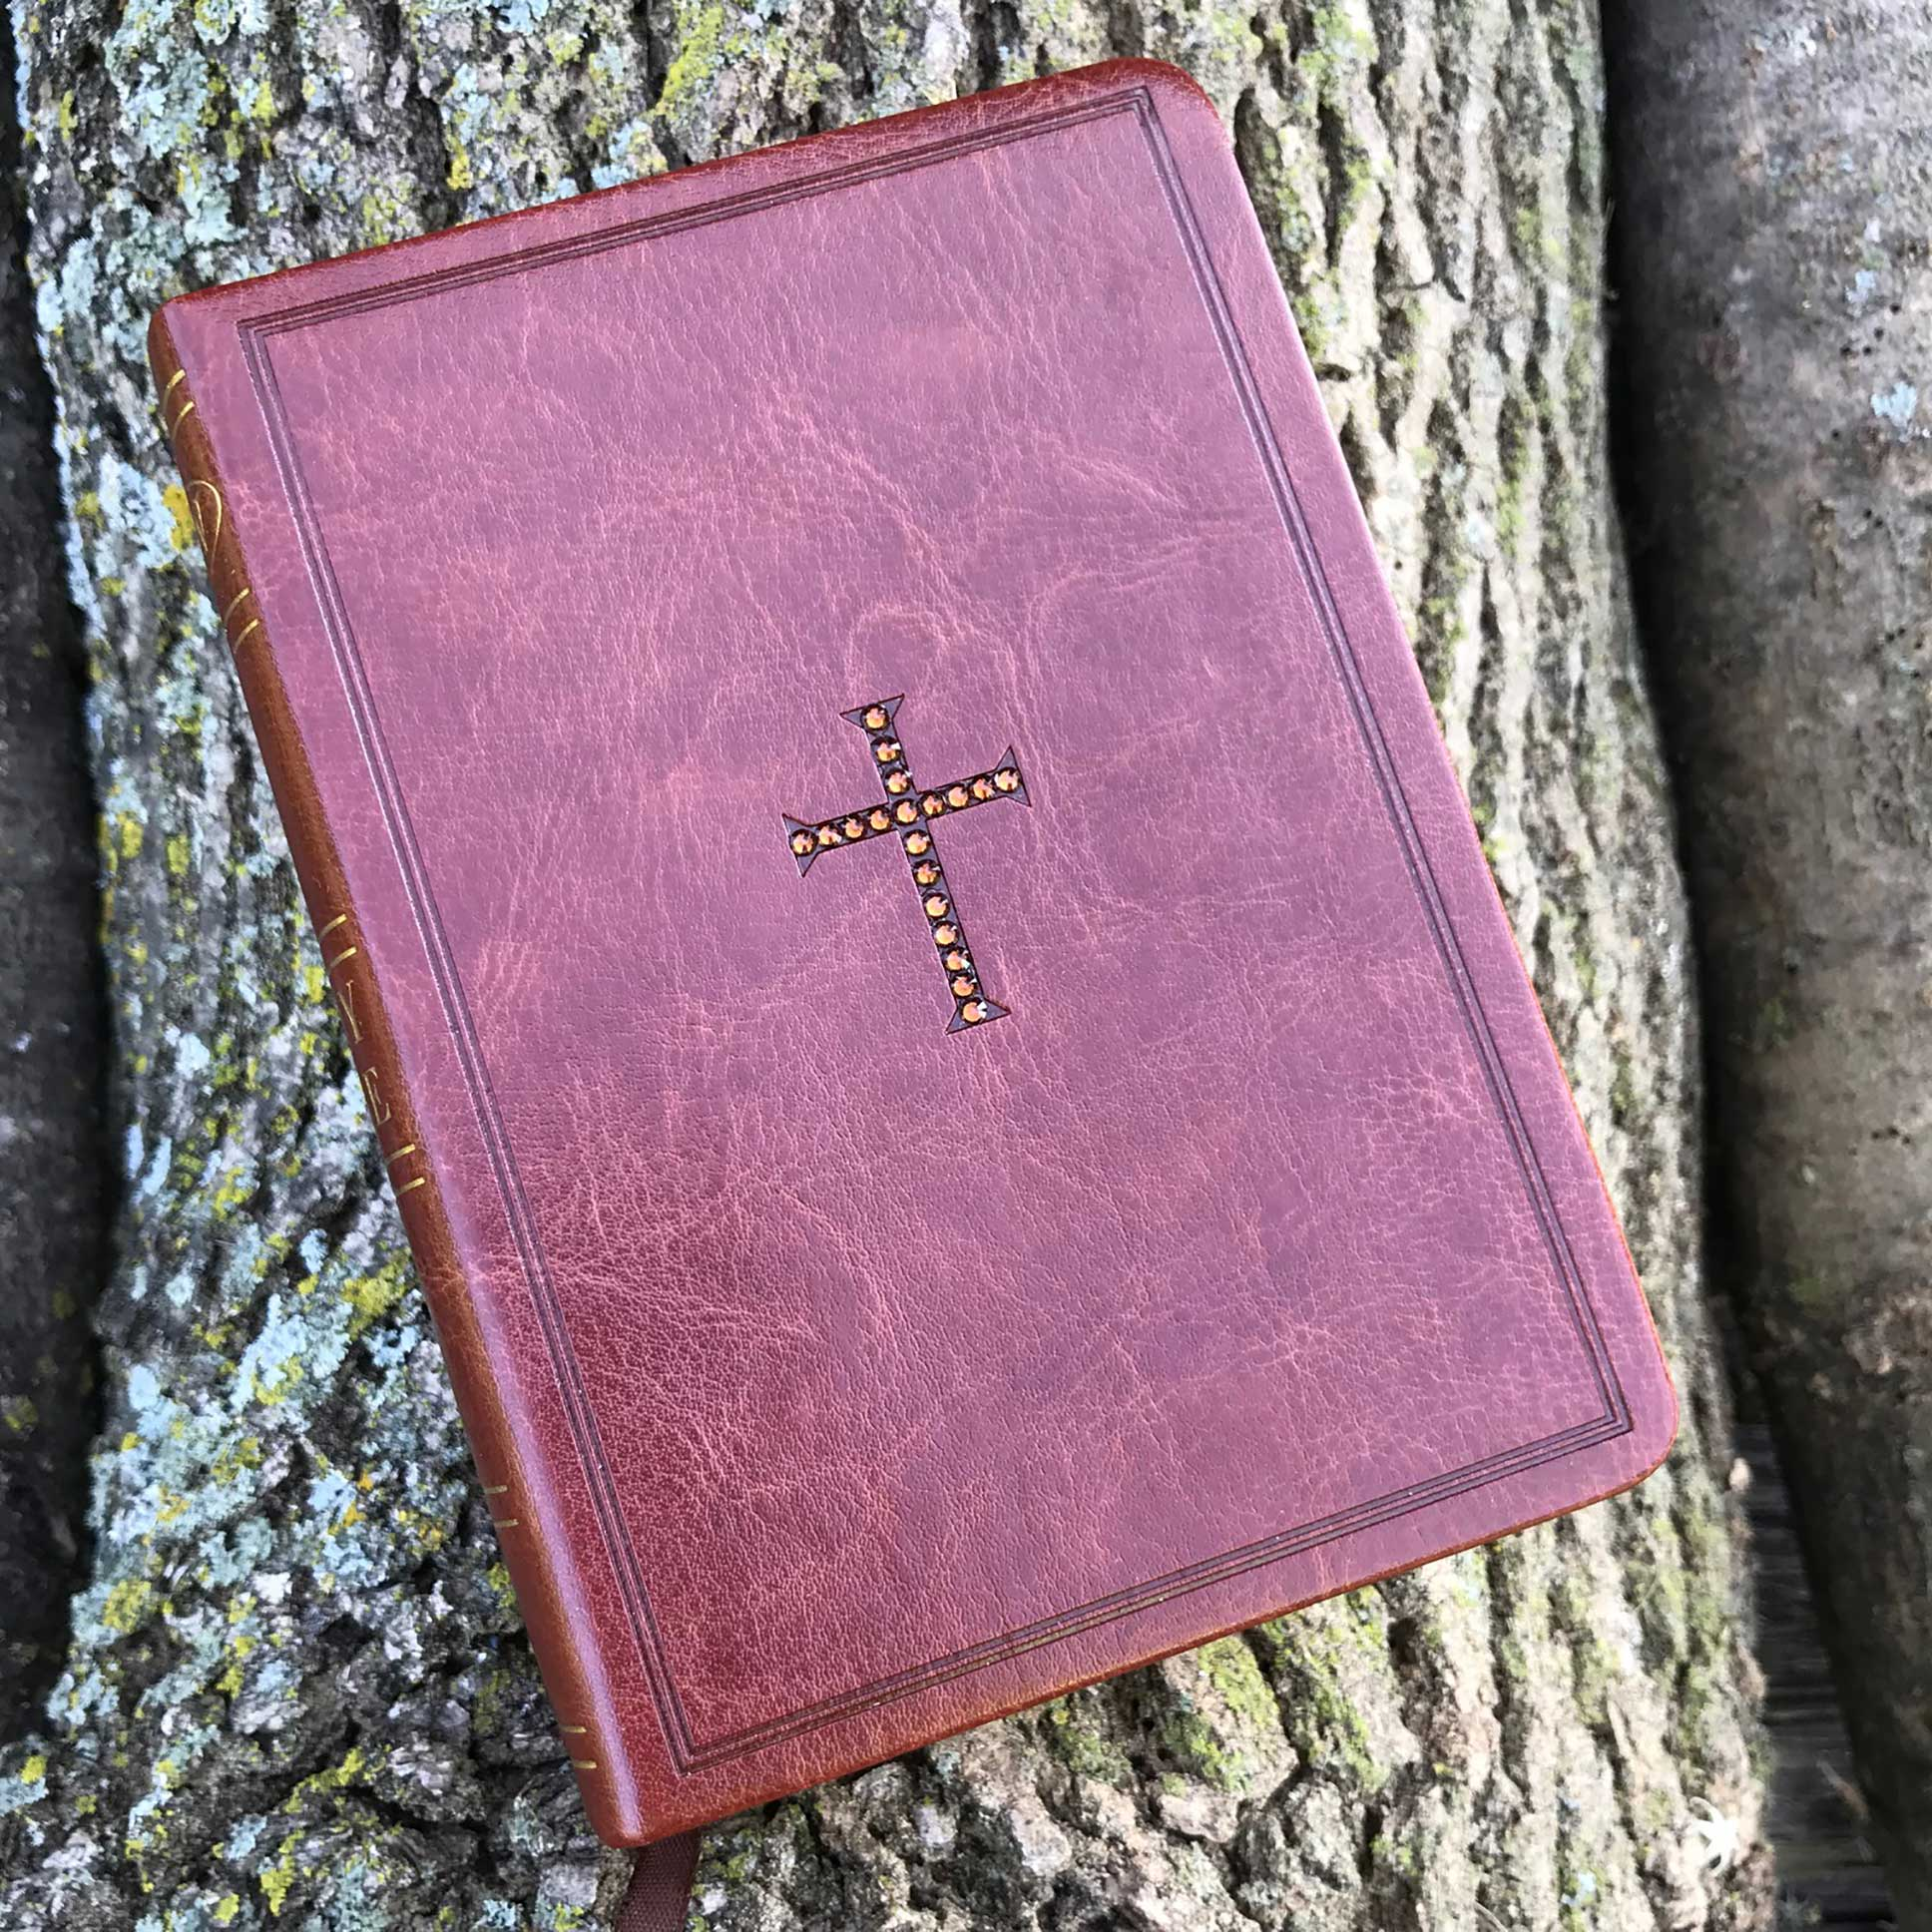 NKJV Brown Compact Reference Bible - Grace Gear